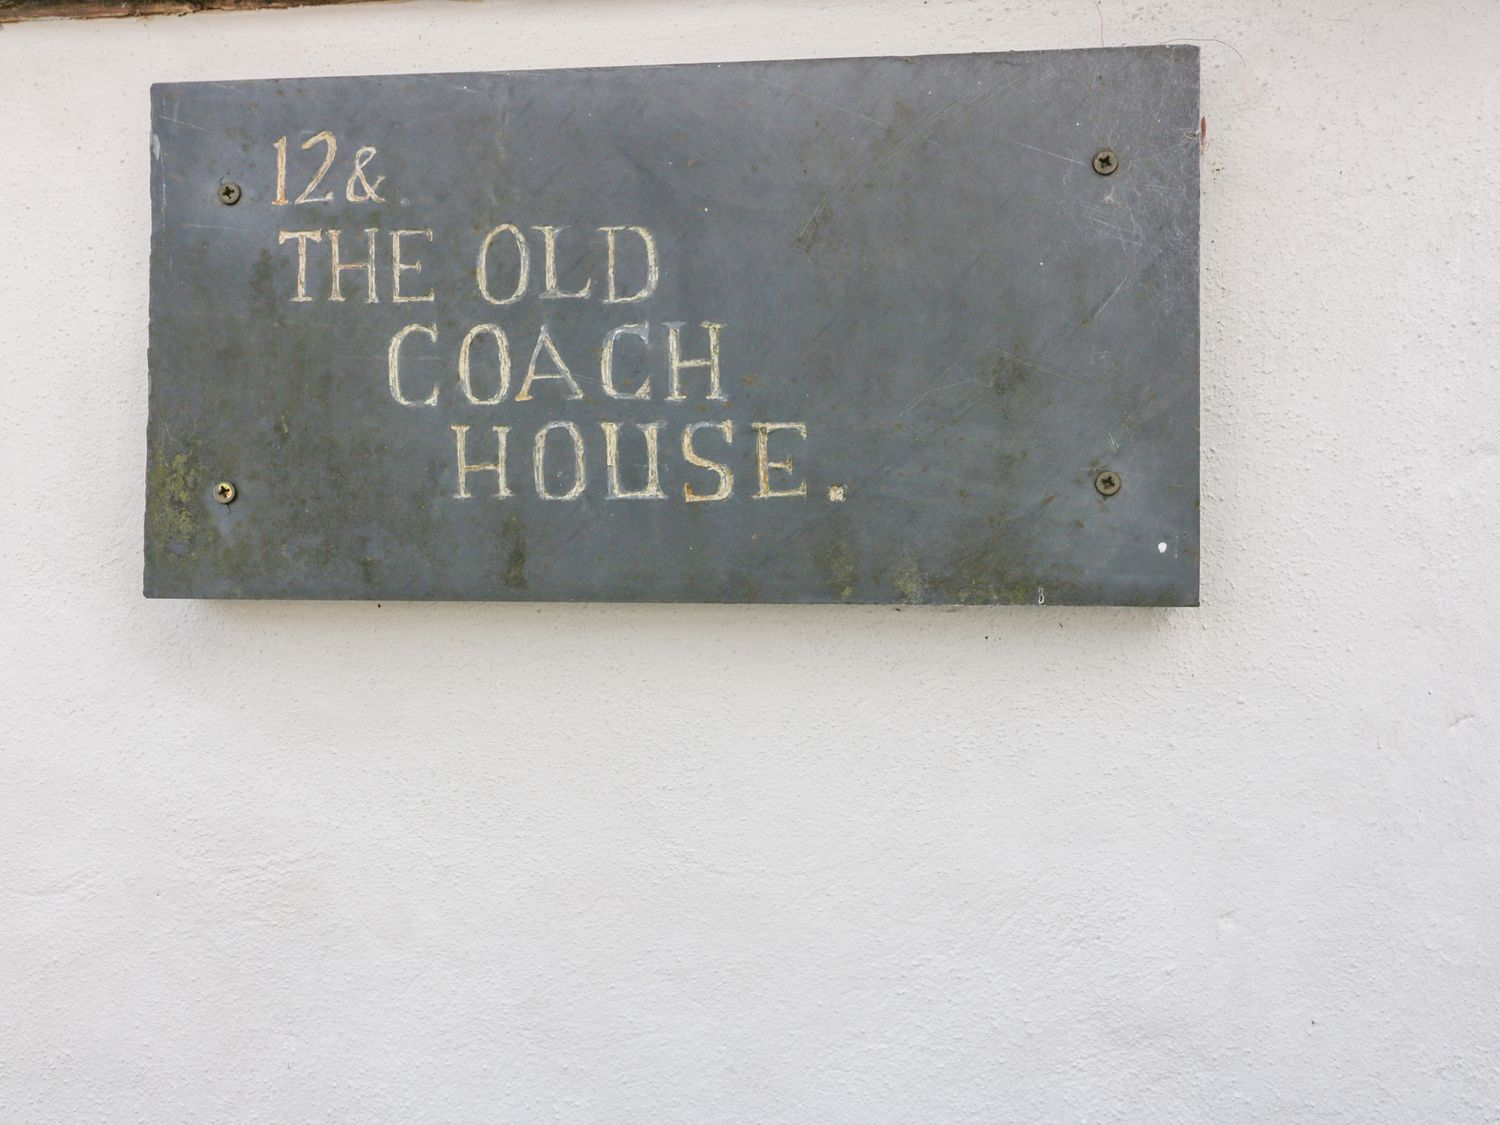 The Old Coach House, Roche